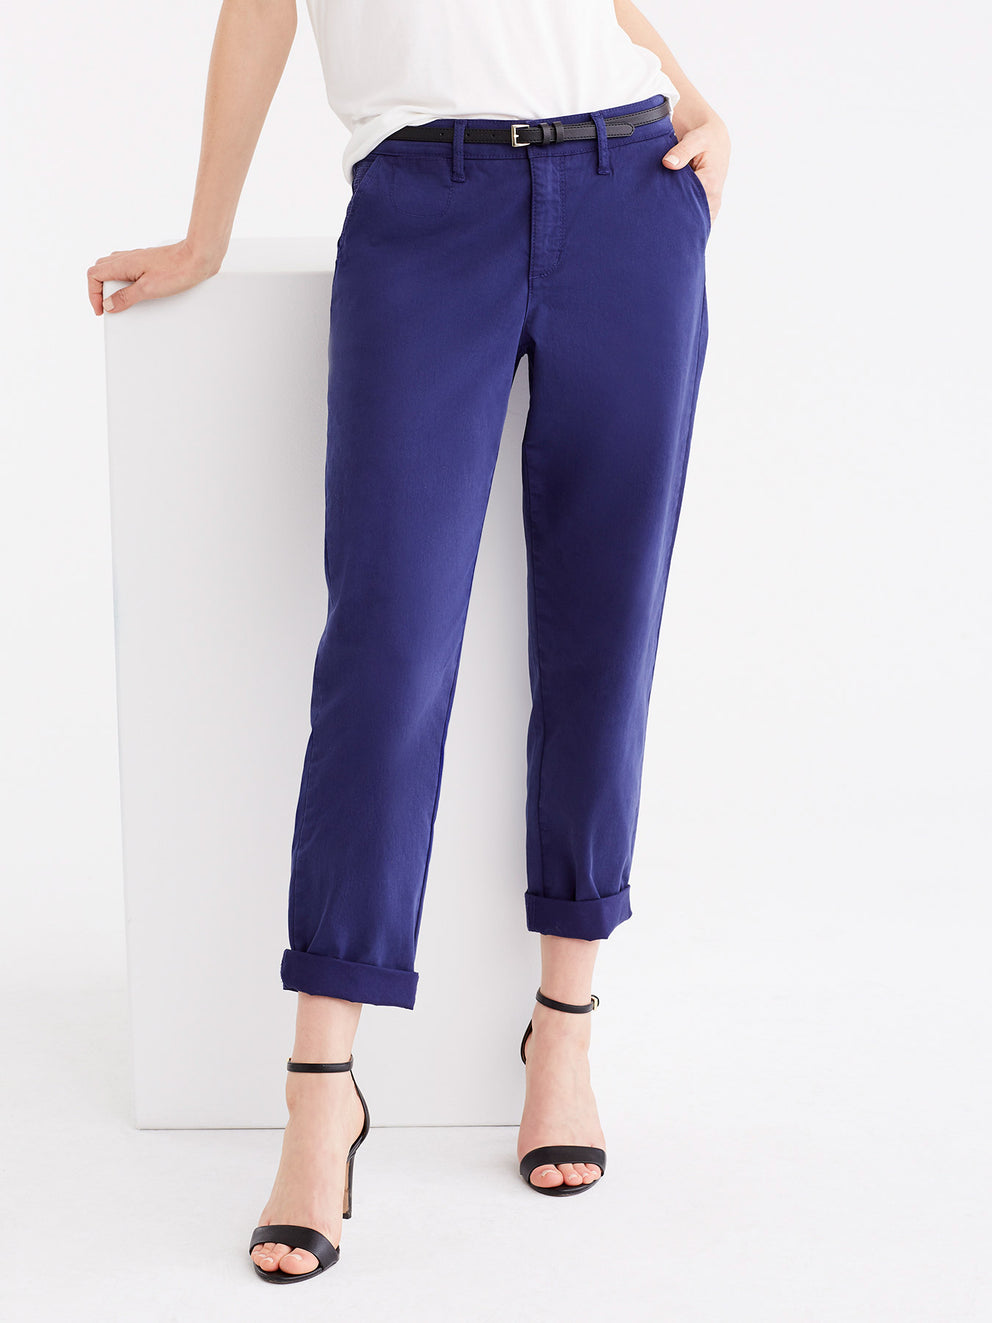 The Jones New York Classic Cropped Chino in color Navy - Image Position 1